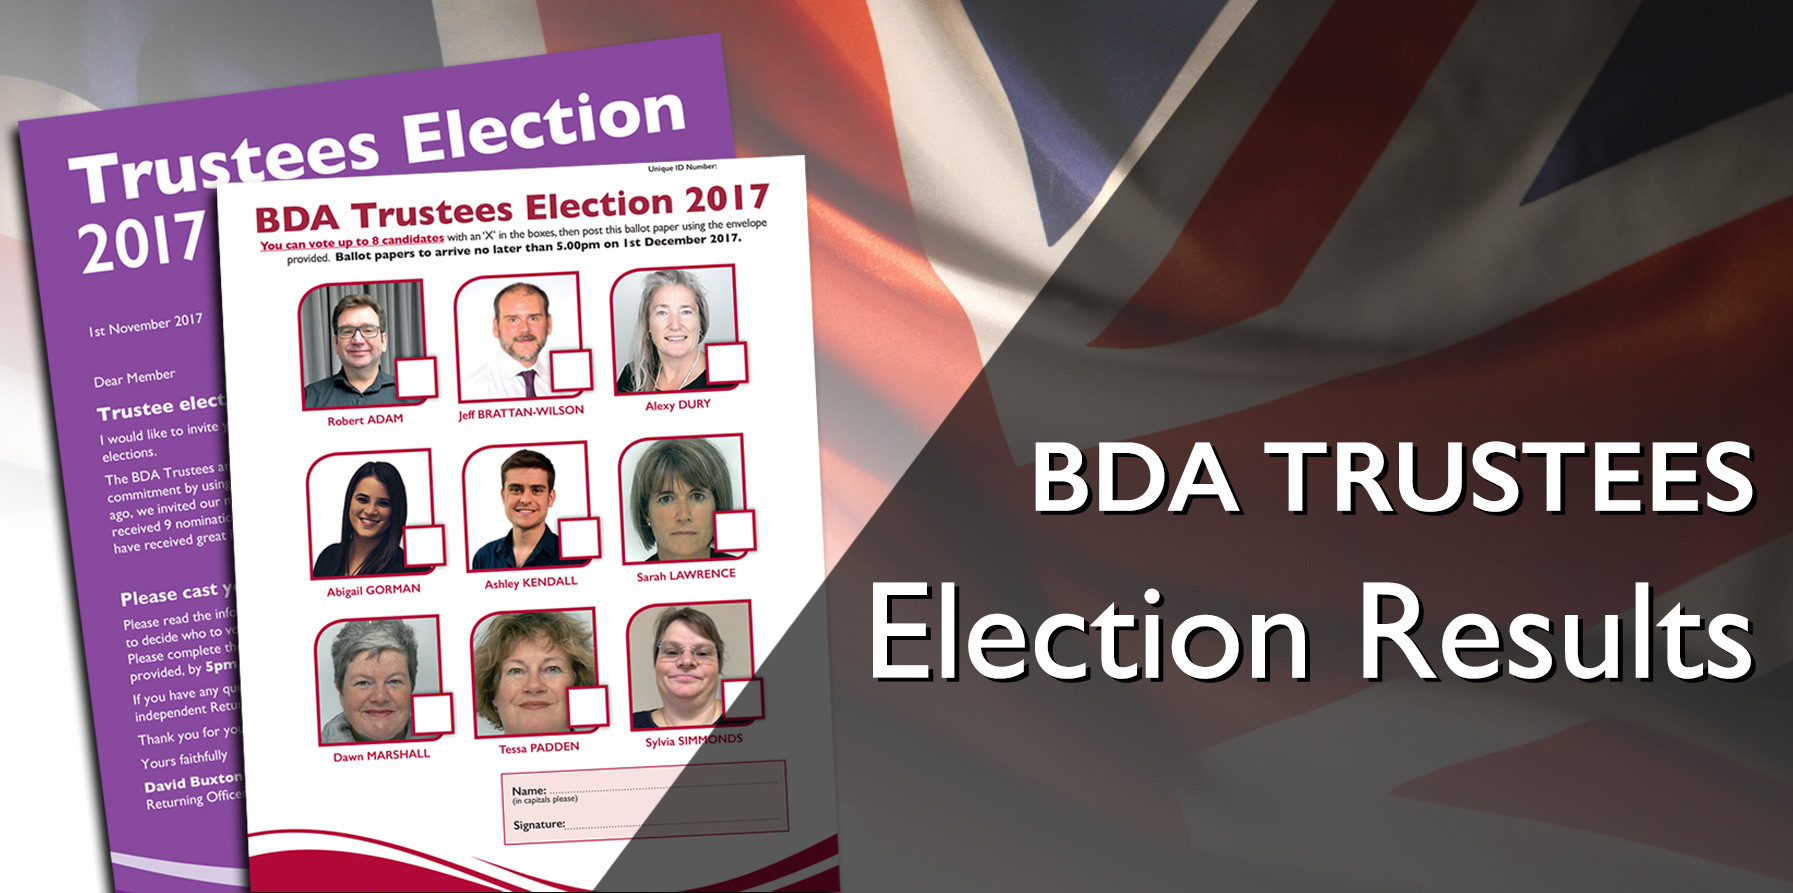 BDA Trustees Election Results